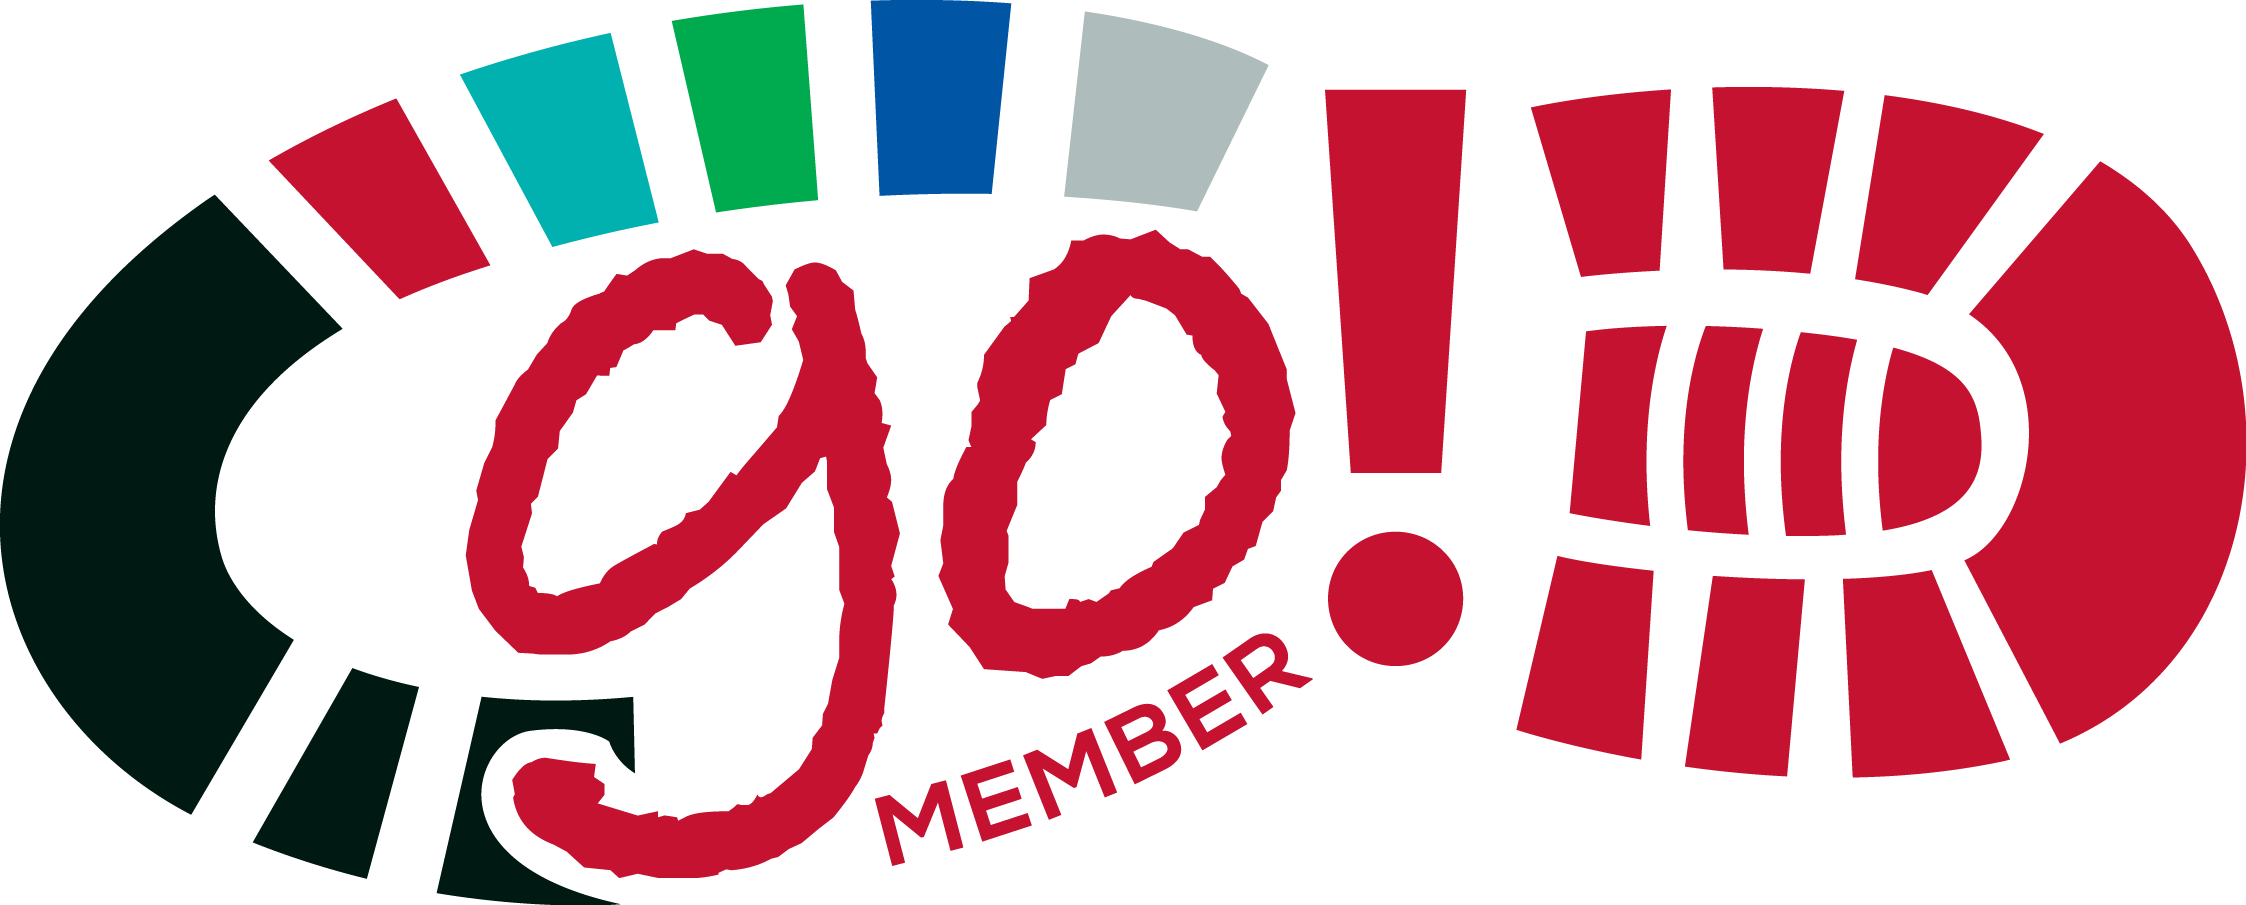 Yumigo! Member Registration